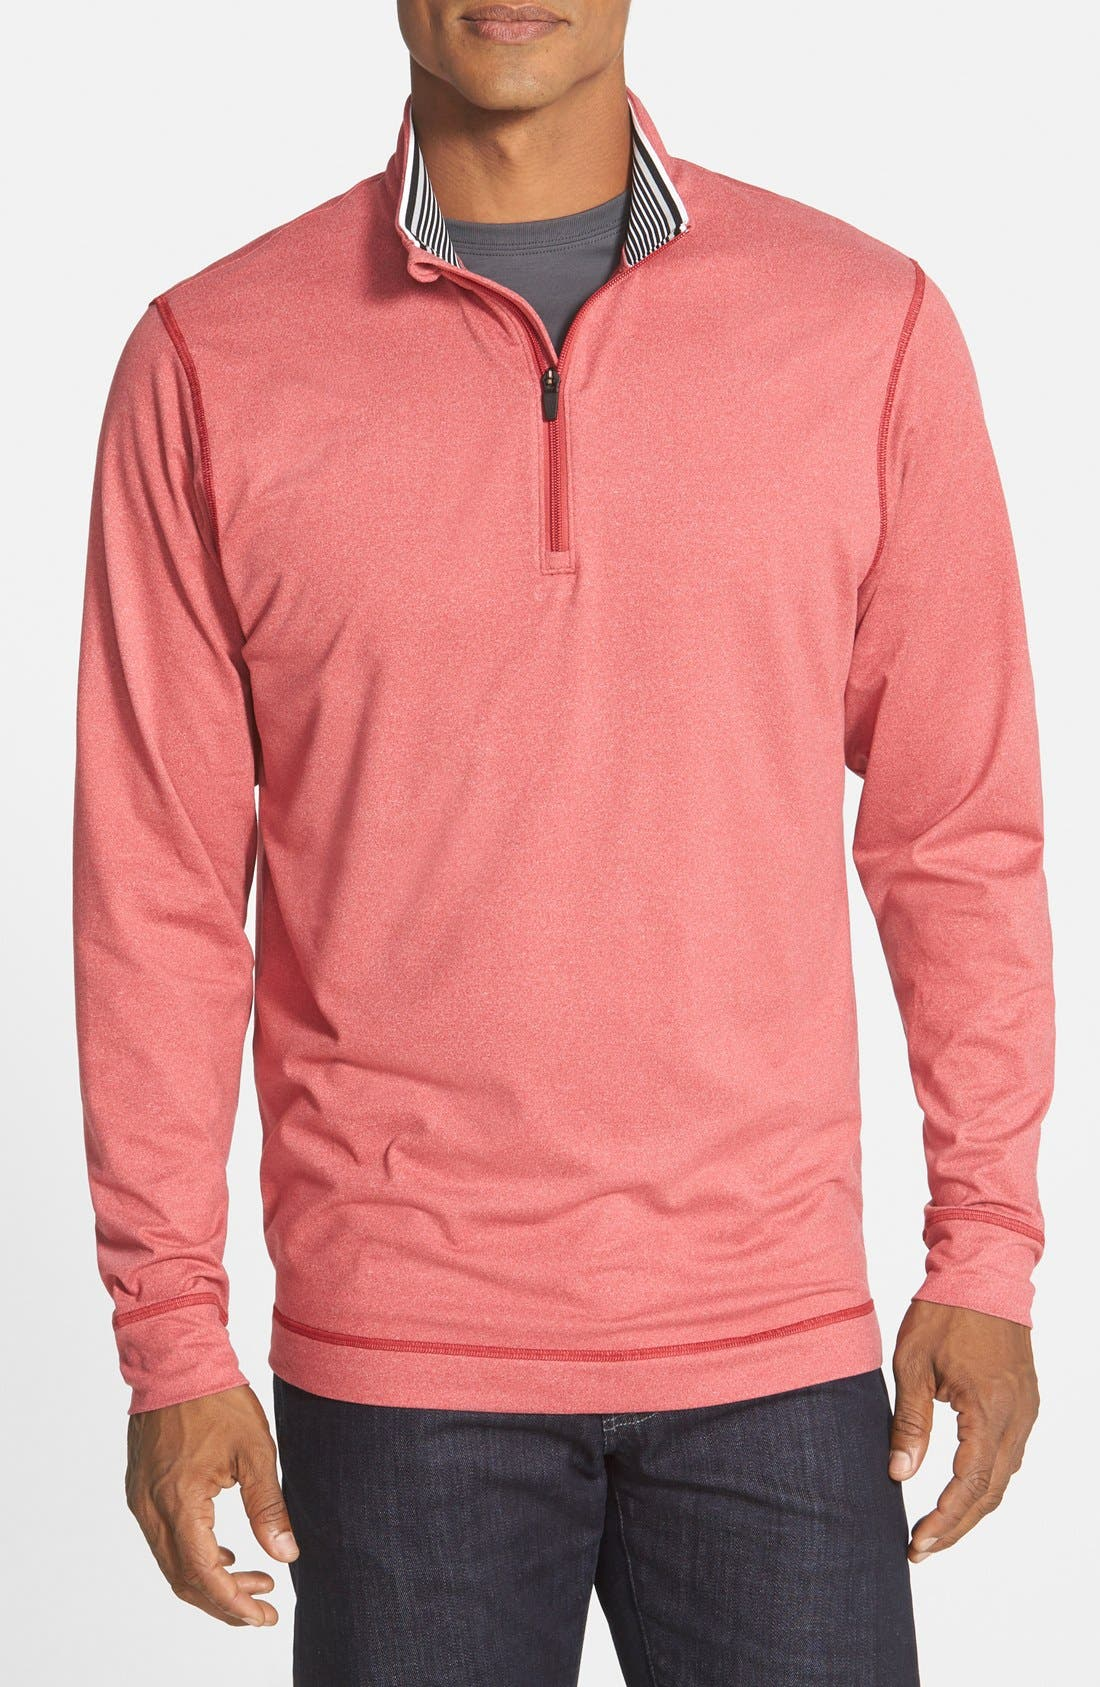 Main Image - Cutter & Buck 'Topspin' DryTec Half Zip Pullover (Online Only)